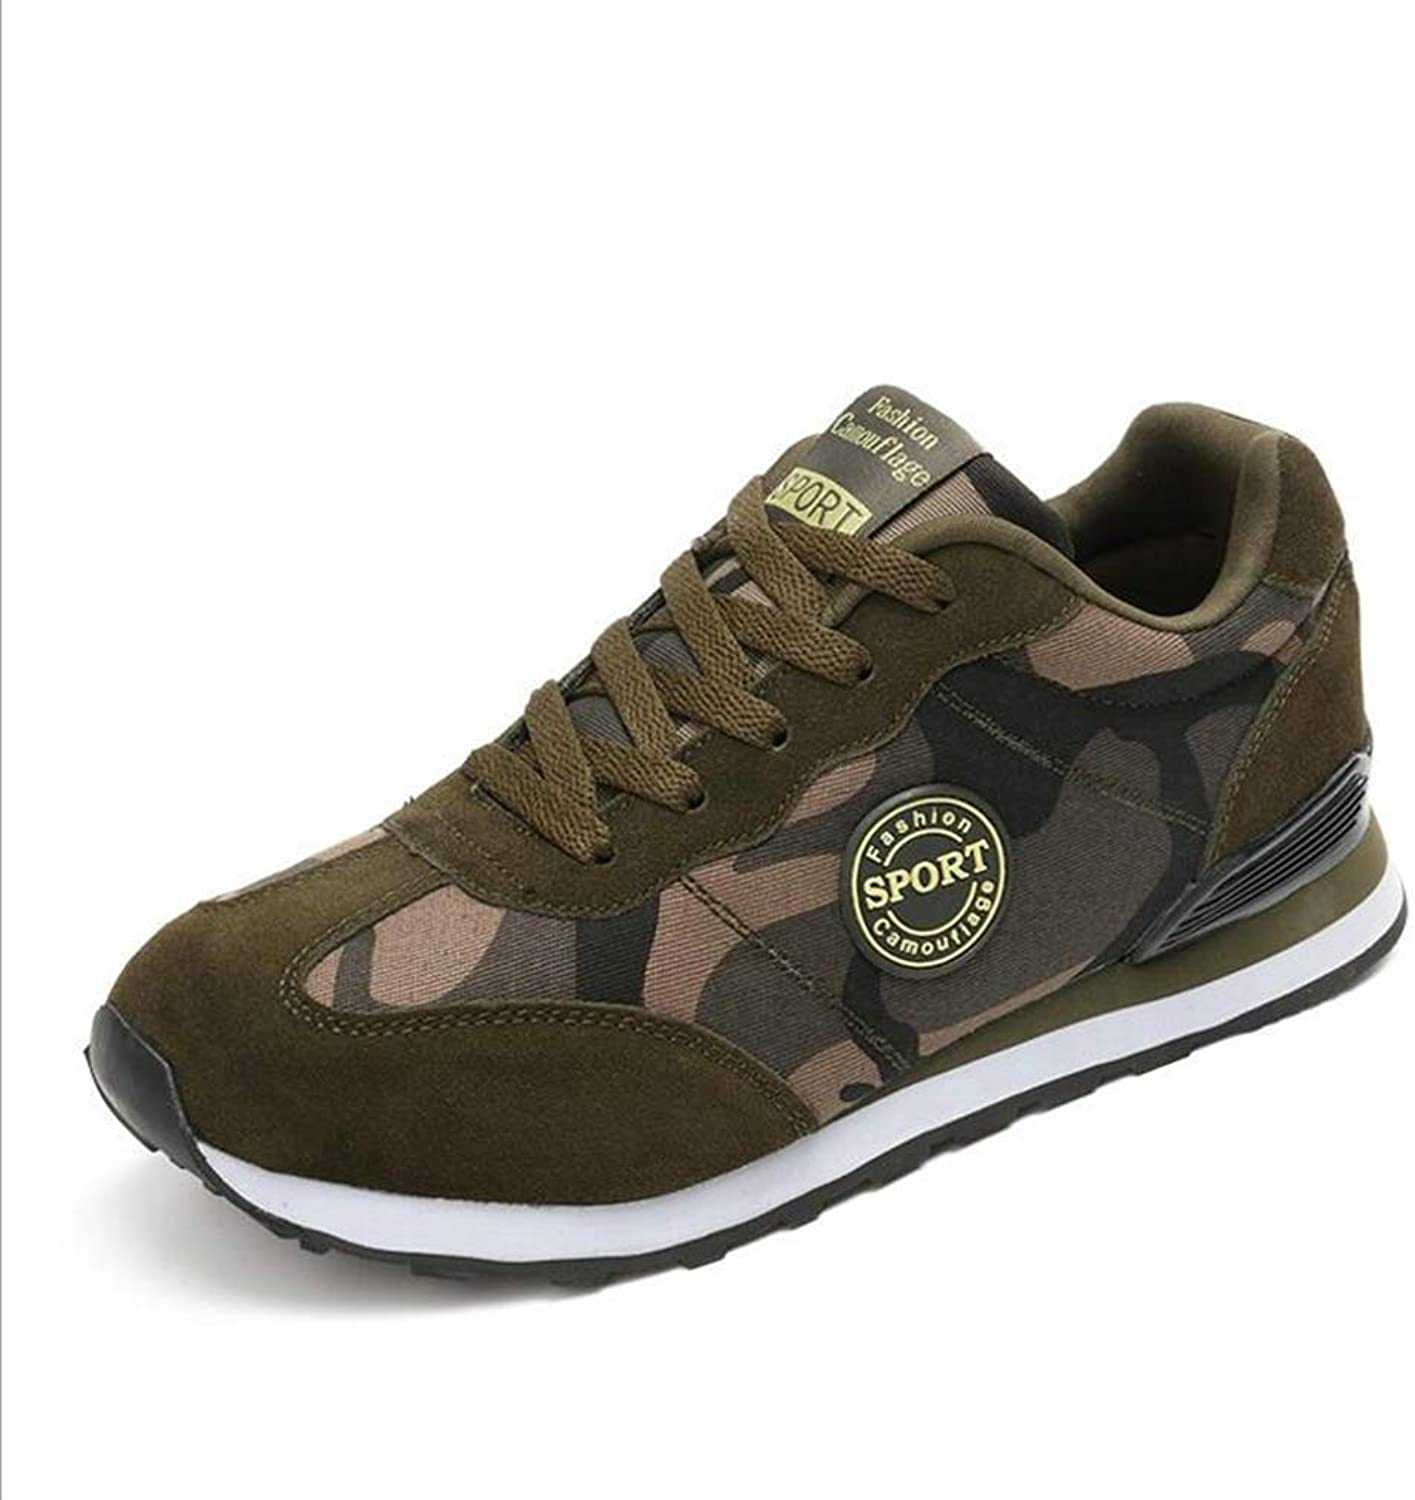 Hoxekle Spring Fashion Lace Up Canvas Women shoes Luxury Army Green Camouflage Wedge Platform Sneakers Casual shoes Autumn